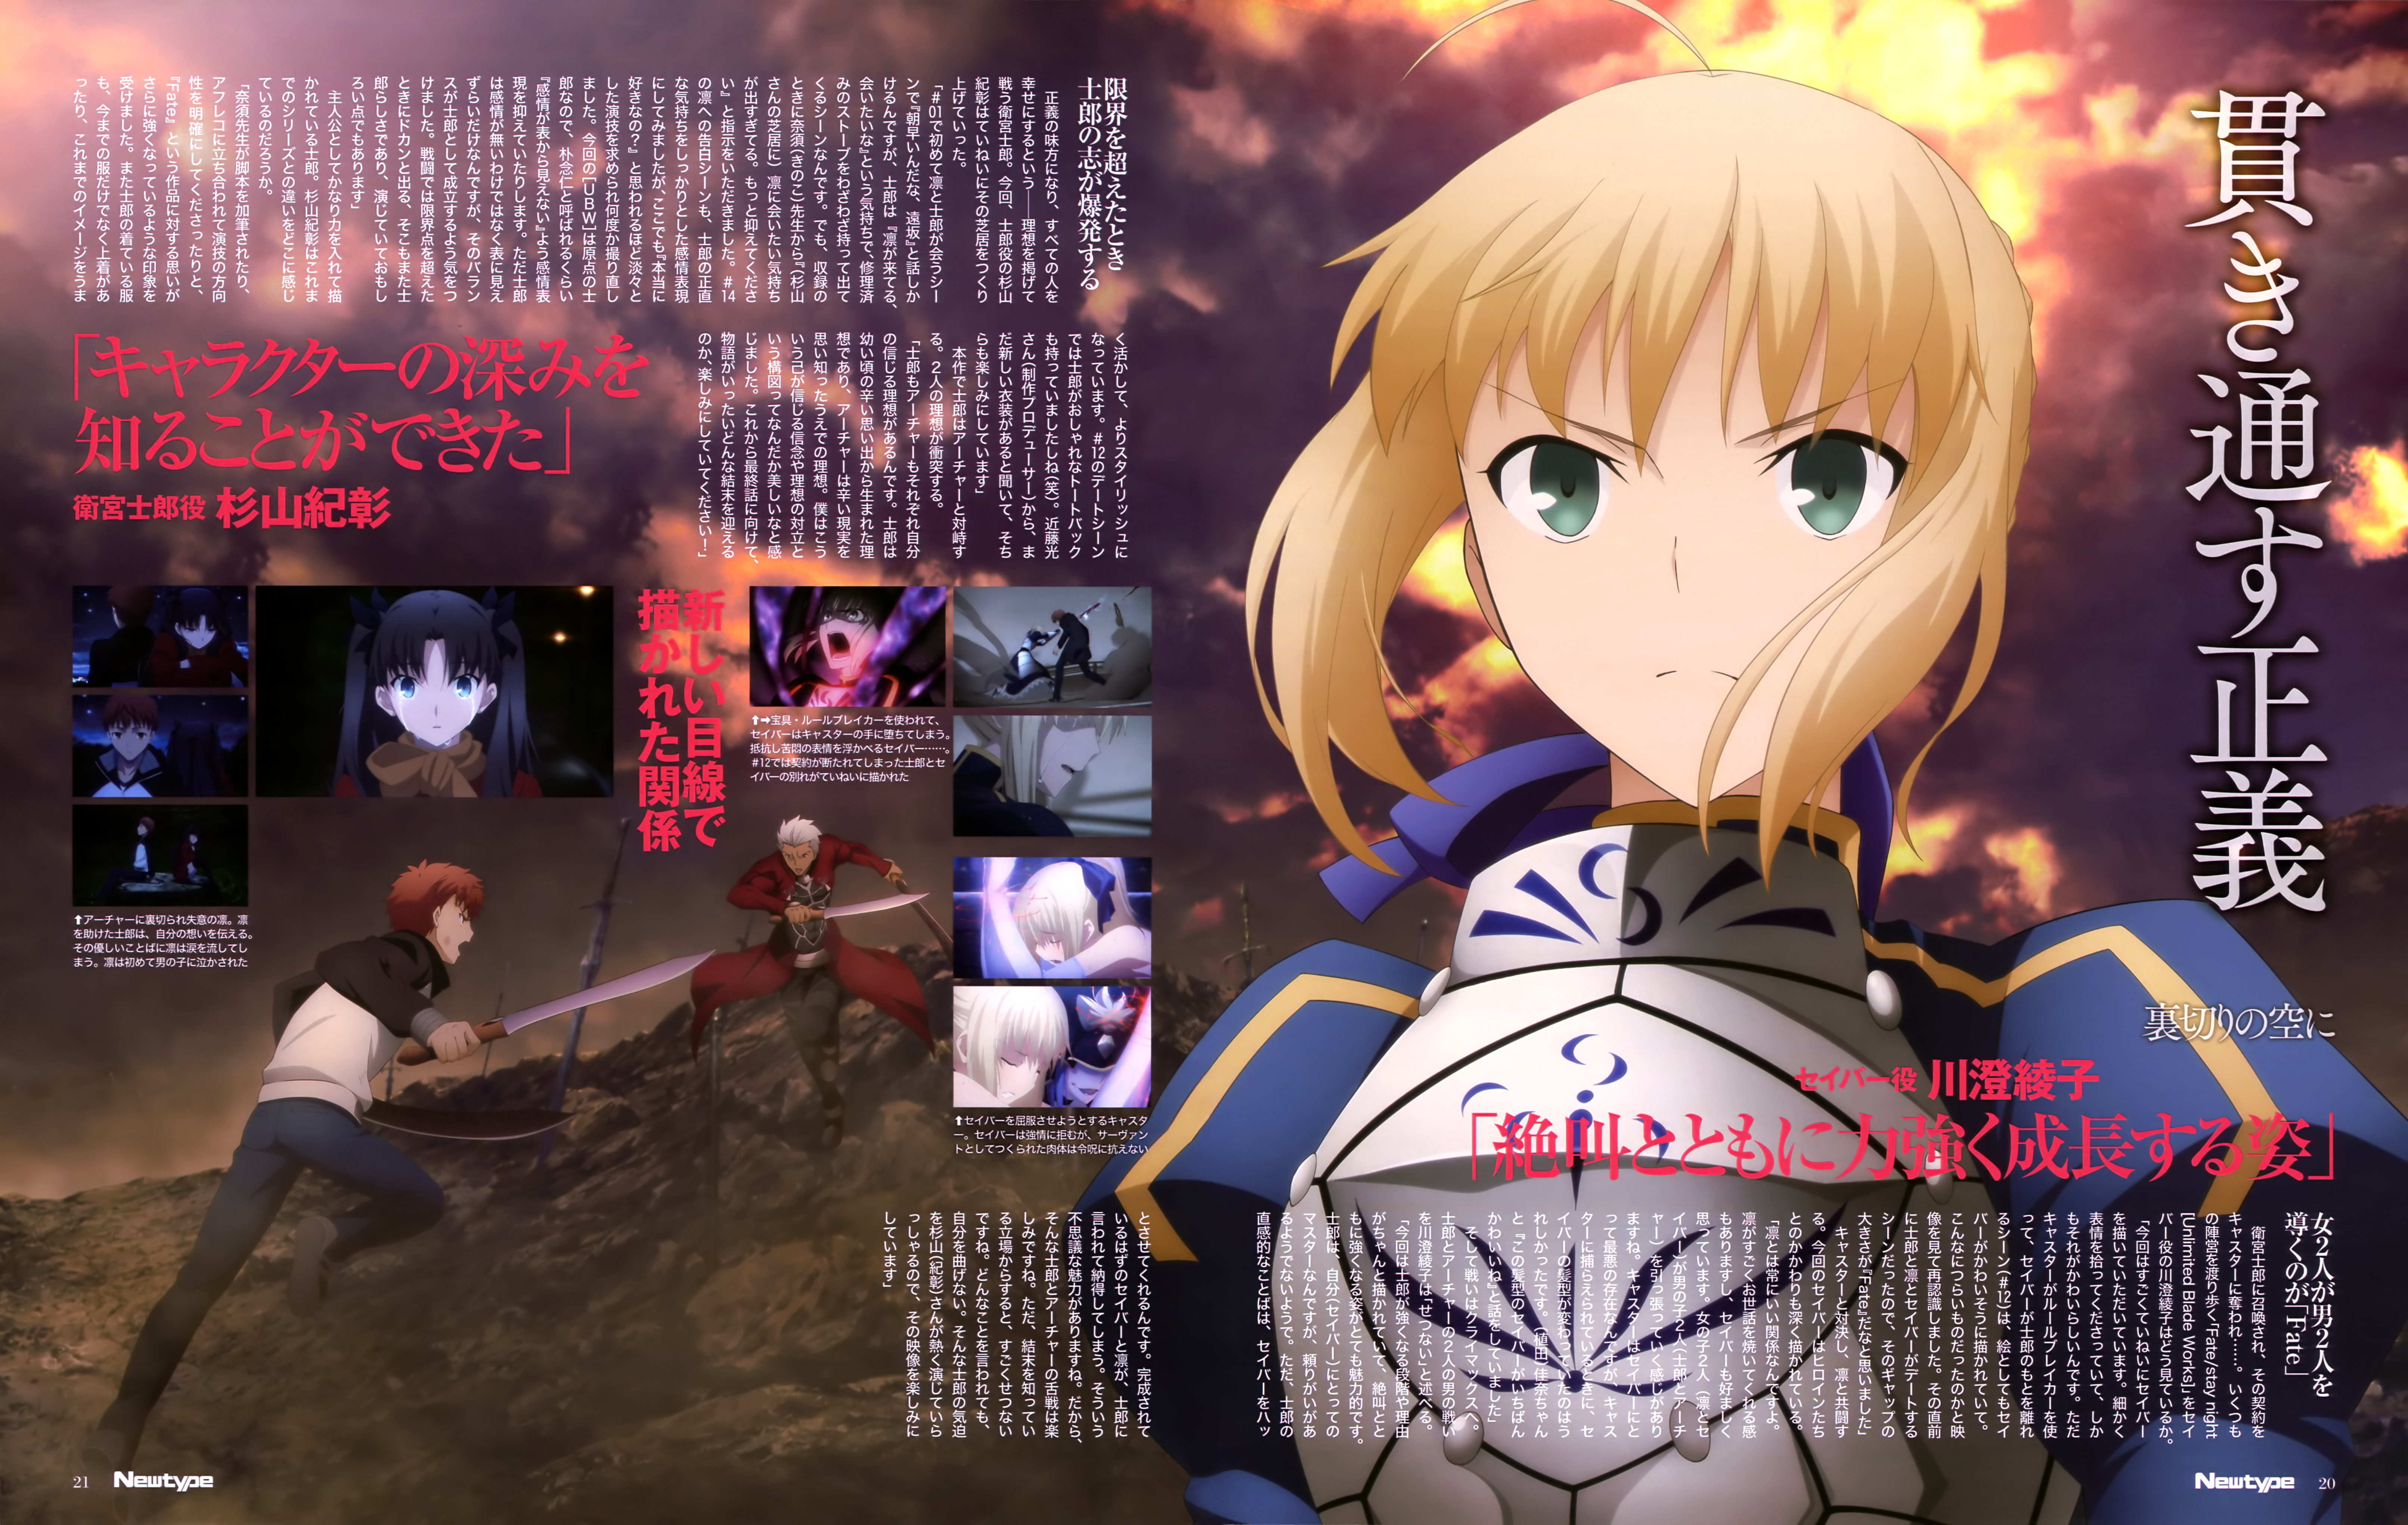 Fate Stay Night 2015 NewType Visuals 1